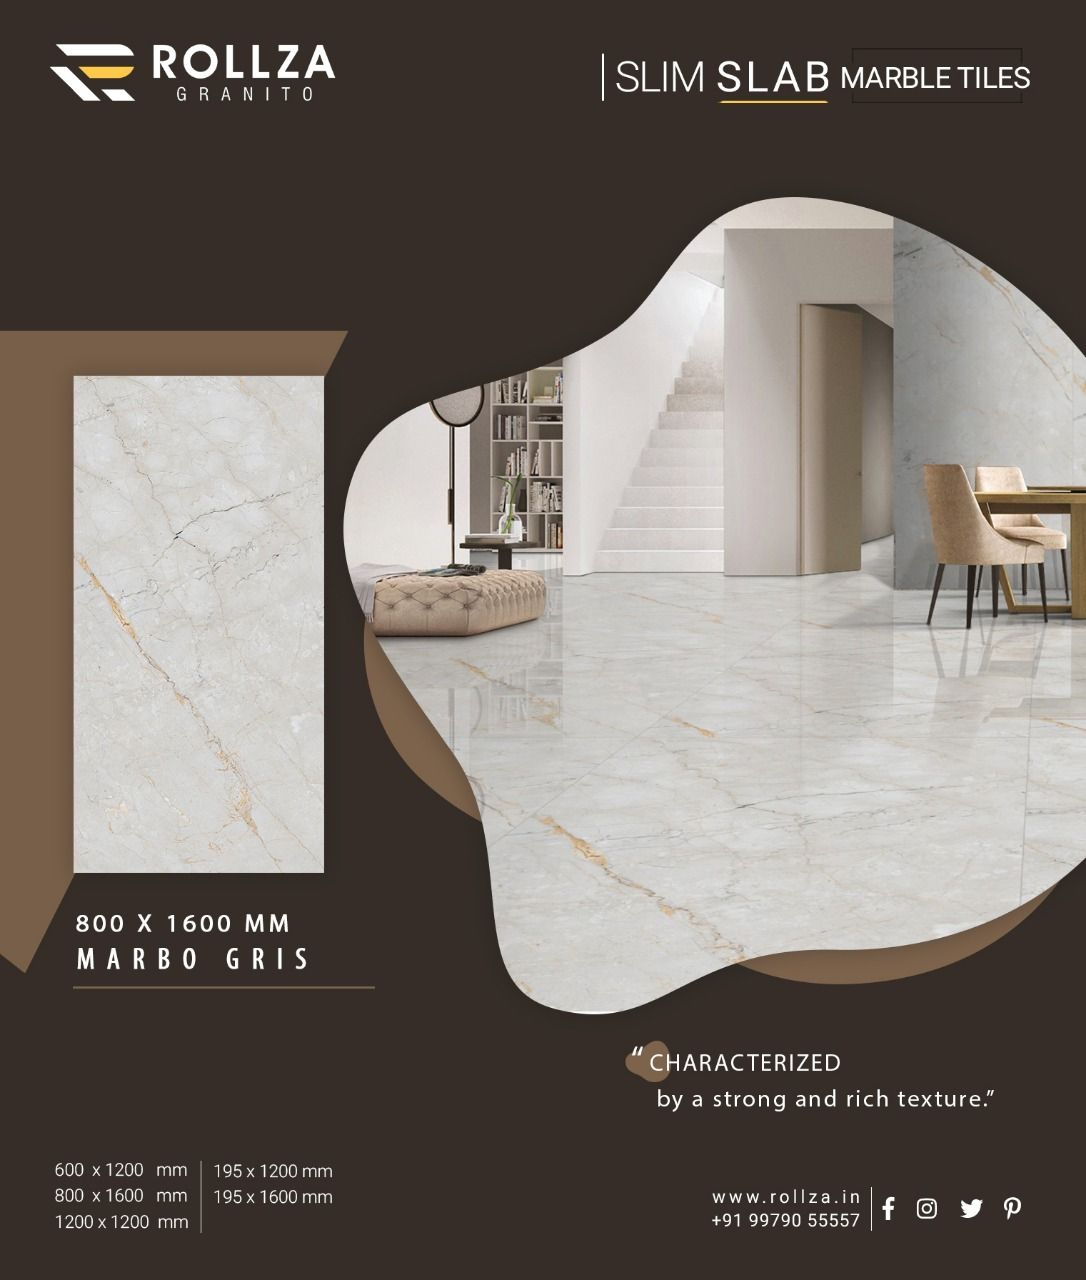 Pin By Shuhui Law On Artex Artistic Tile Tile Manufacturers Marble Tiles